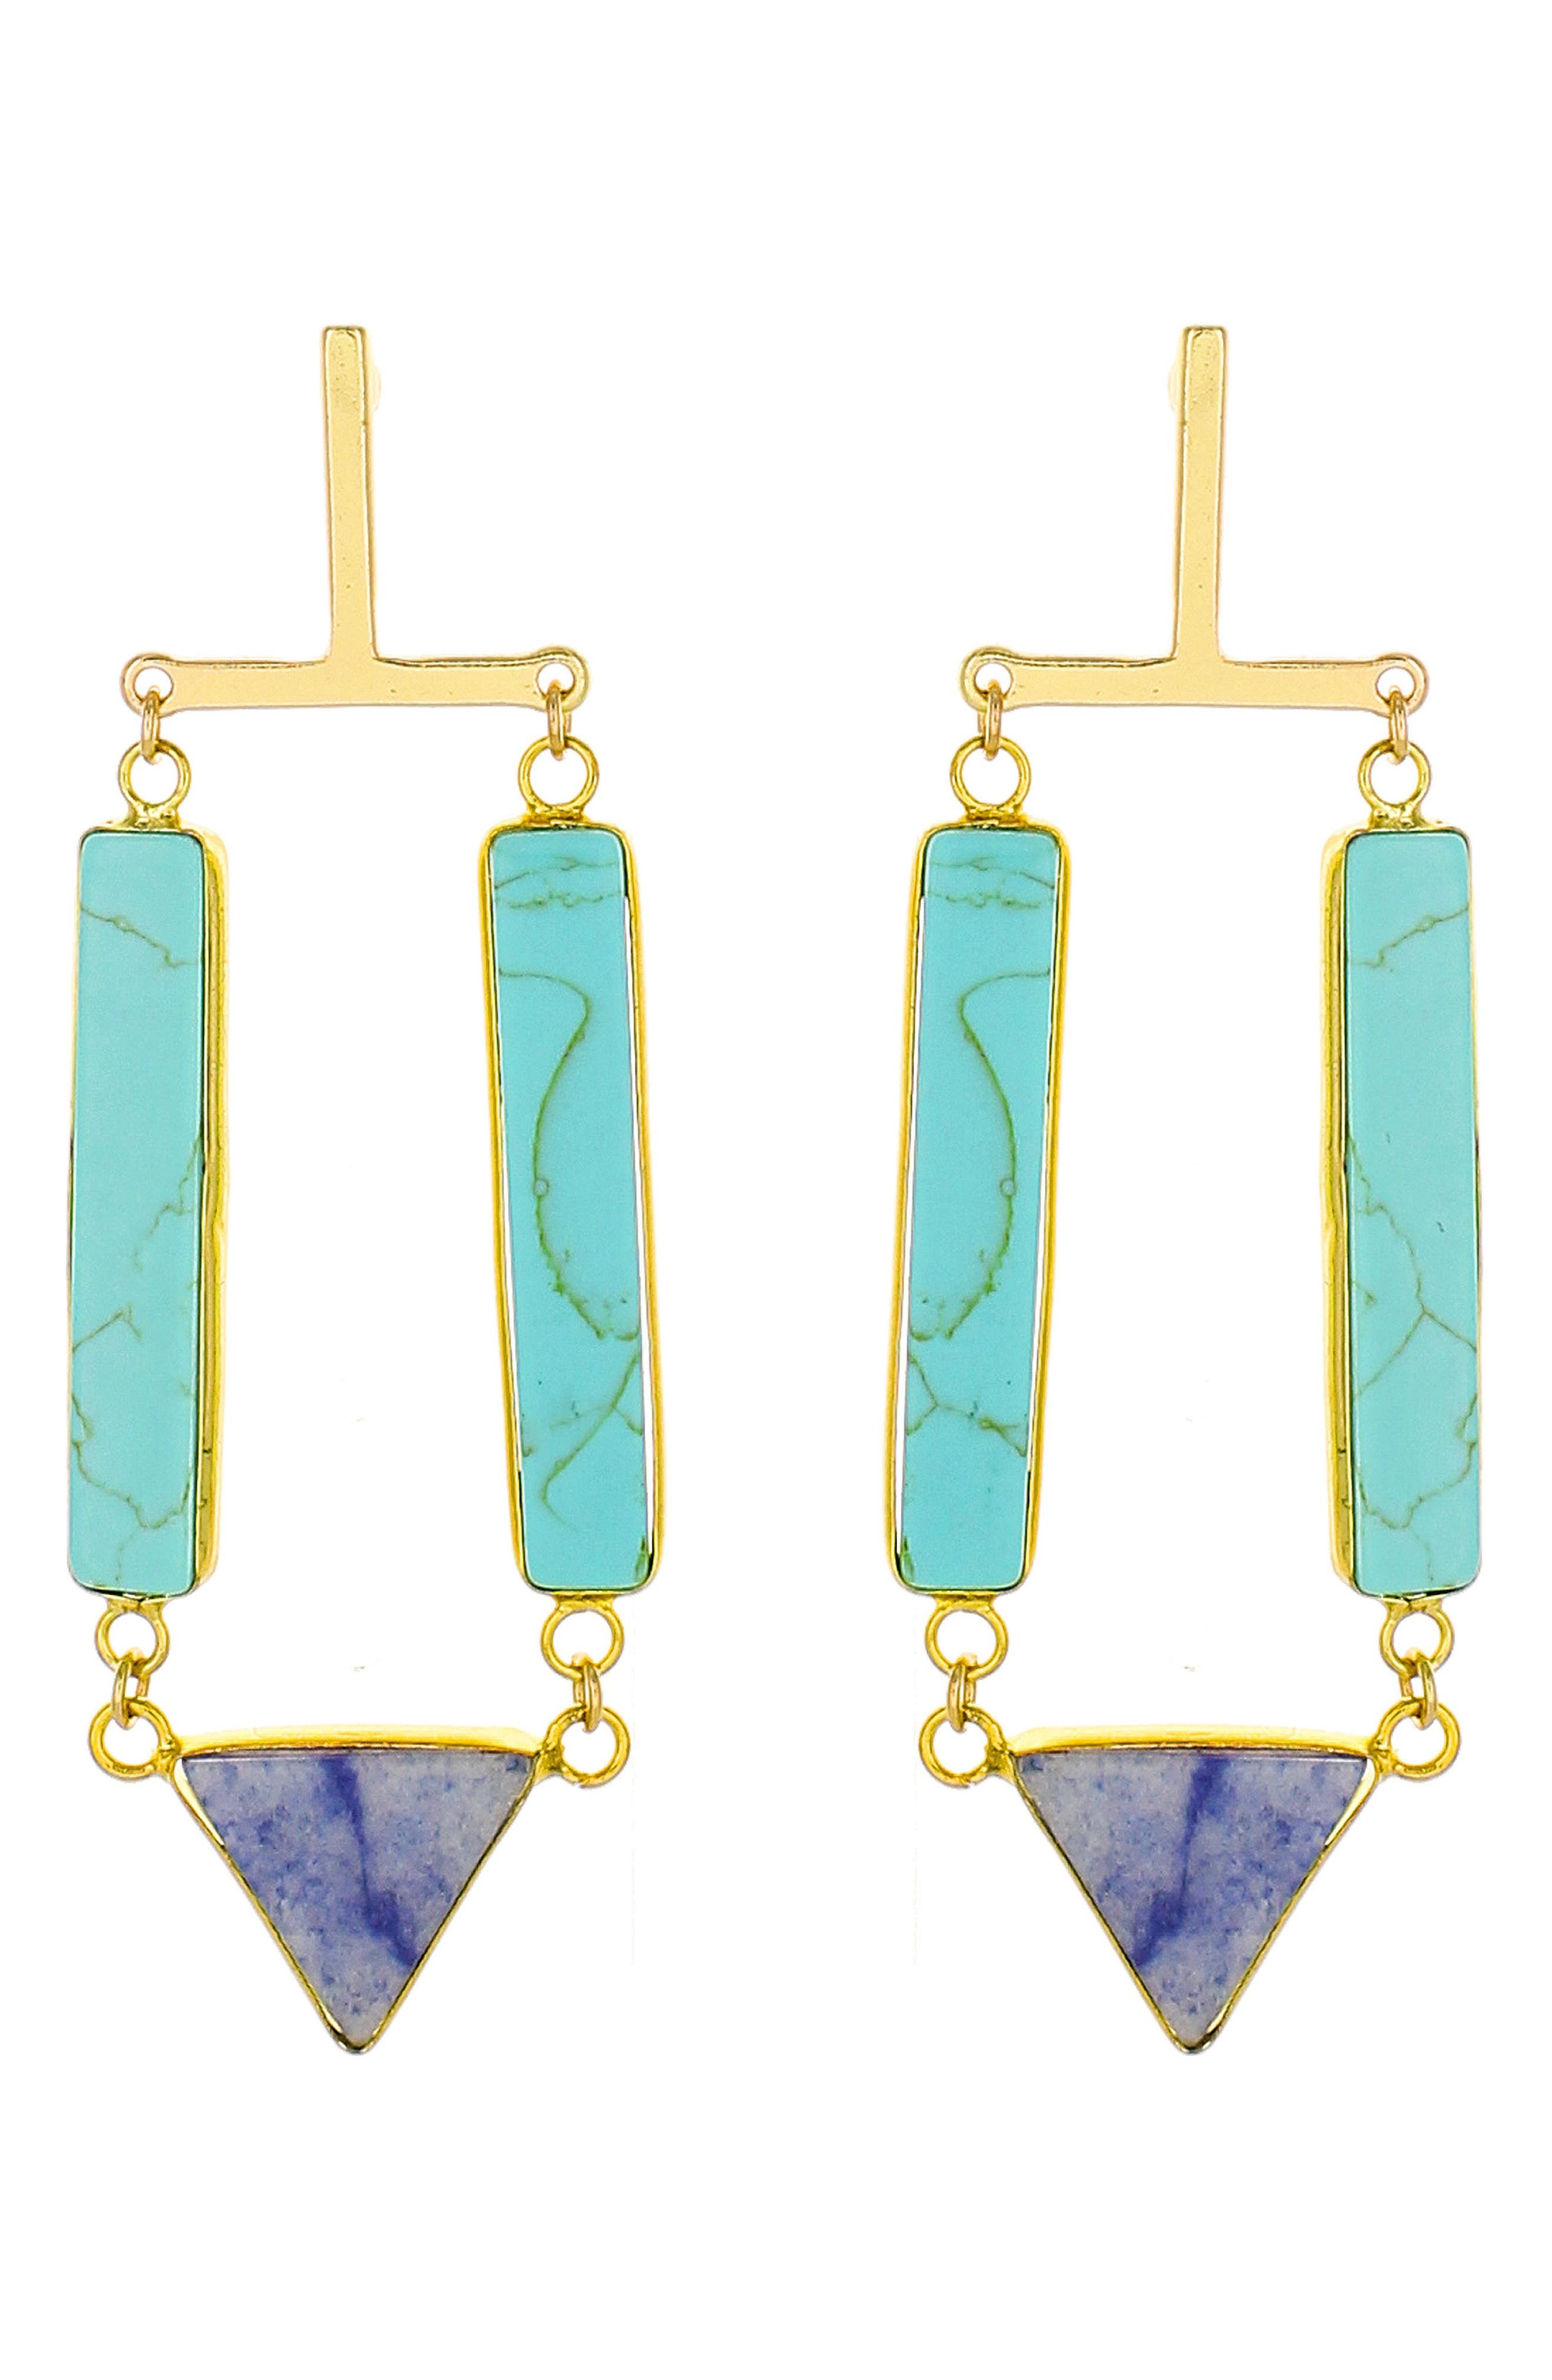 Stone Drop Earrings,                         Main,                         color, TURQUOISE/ NAVY MULTI